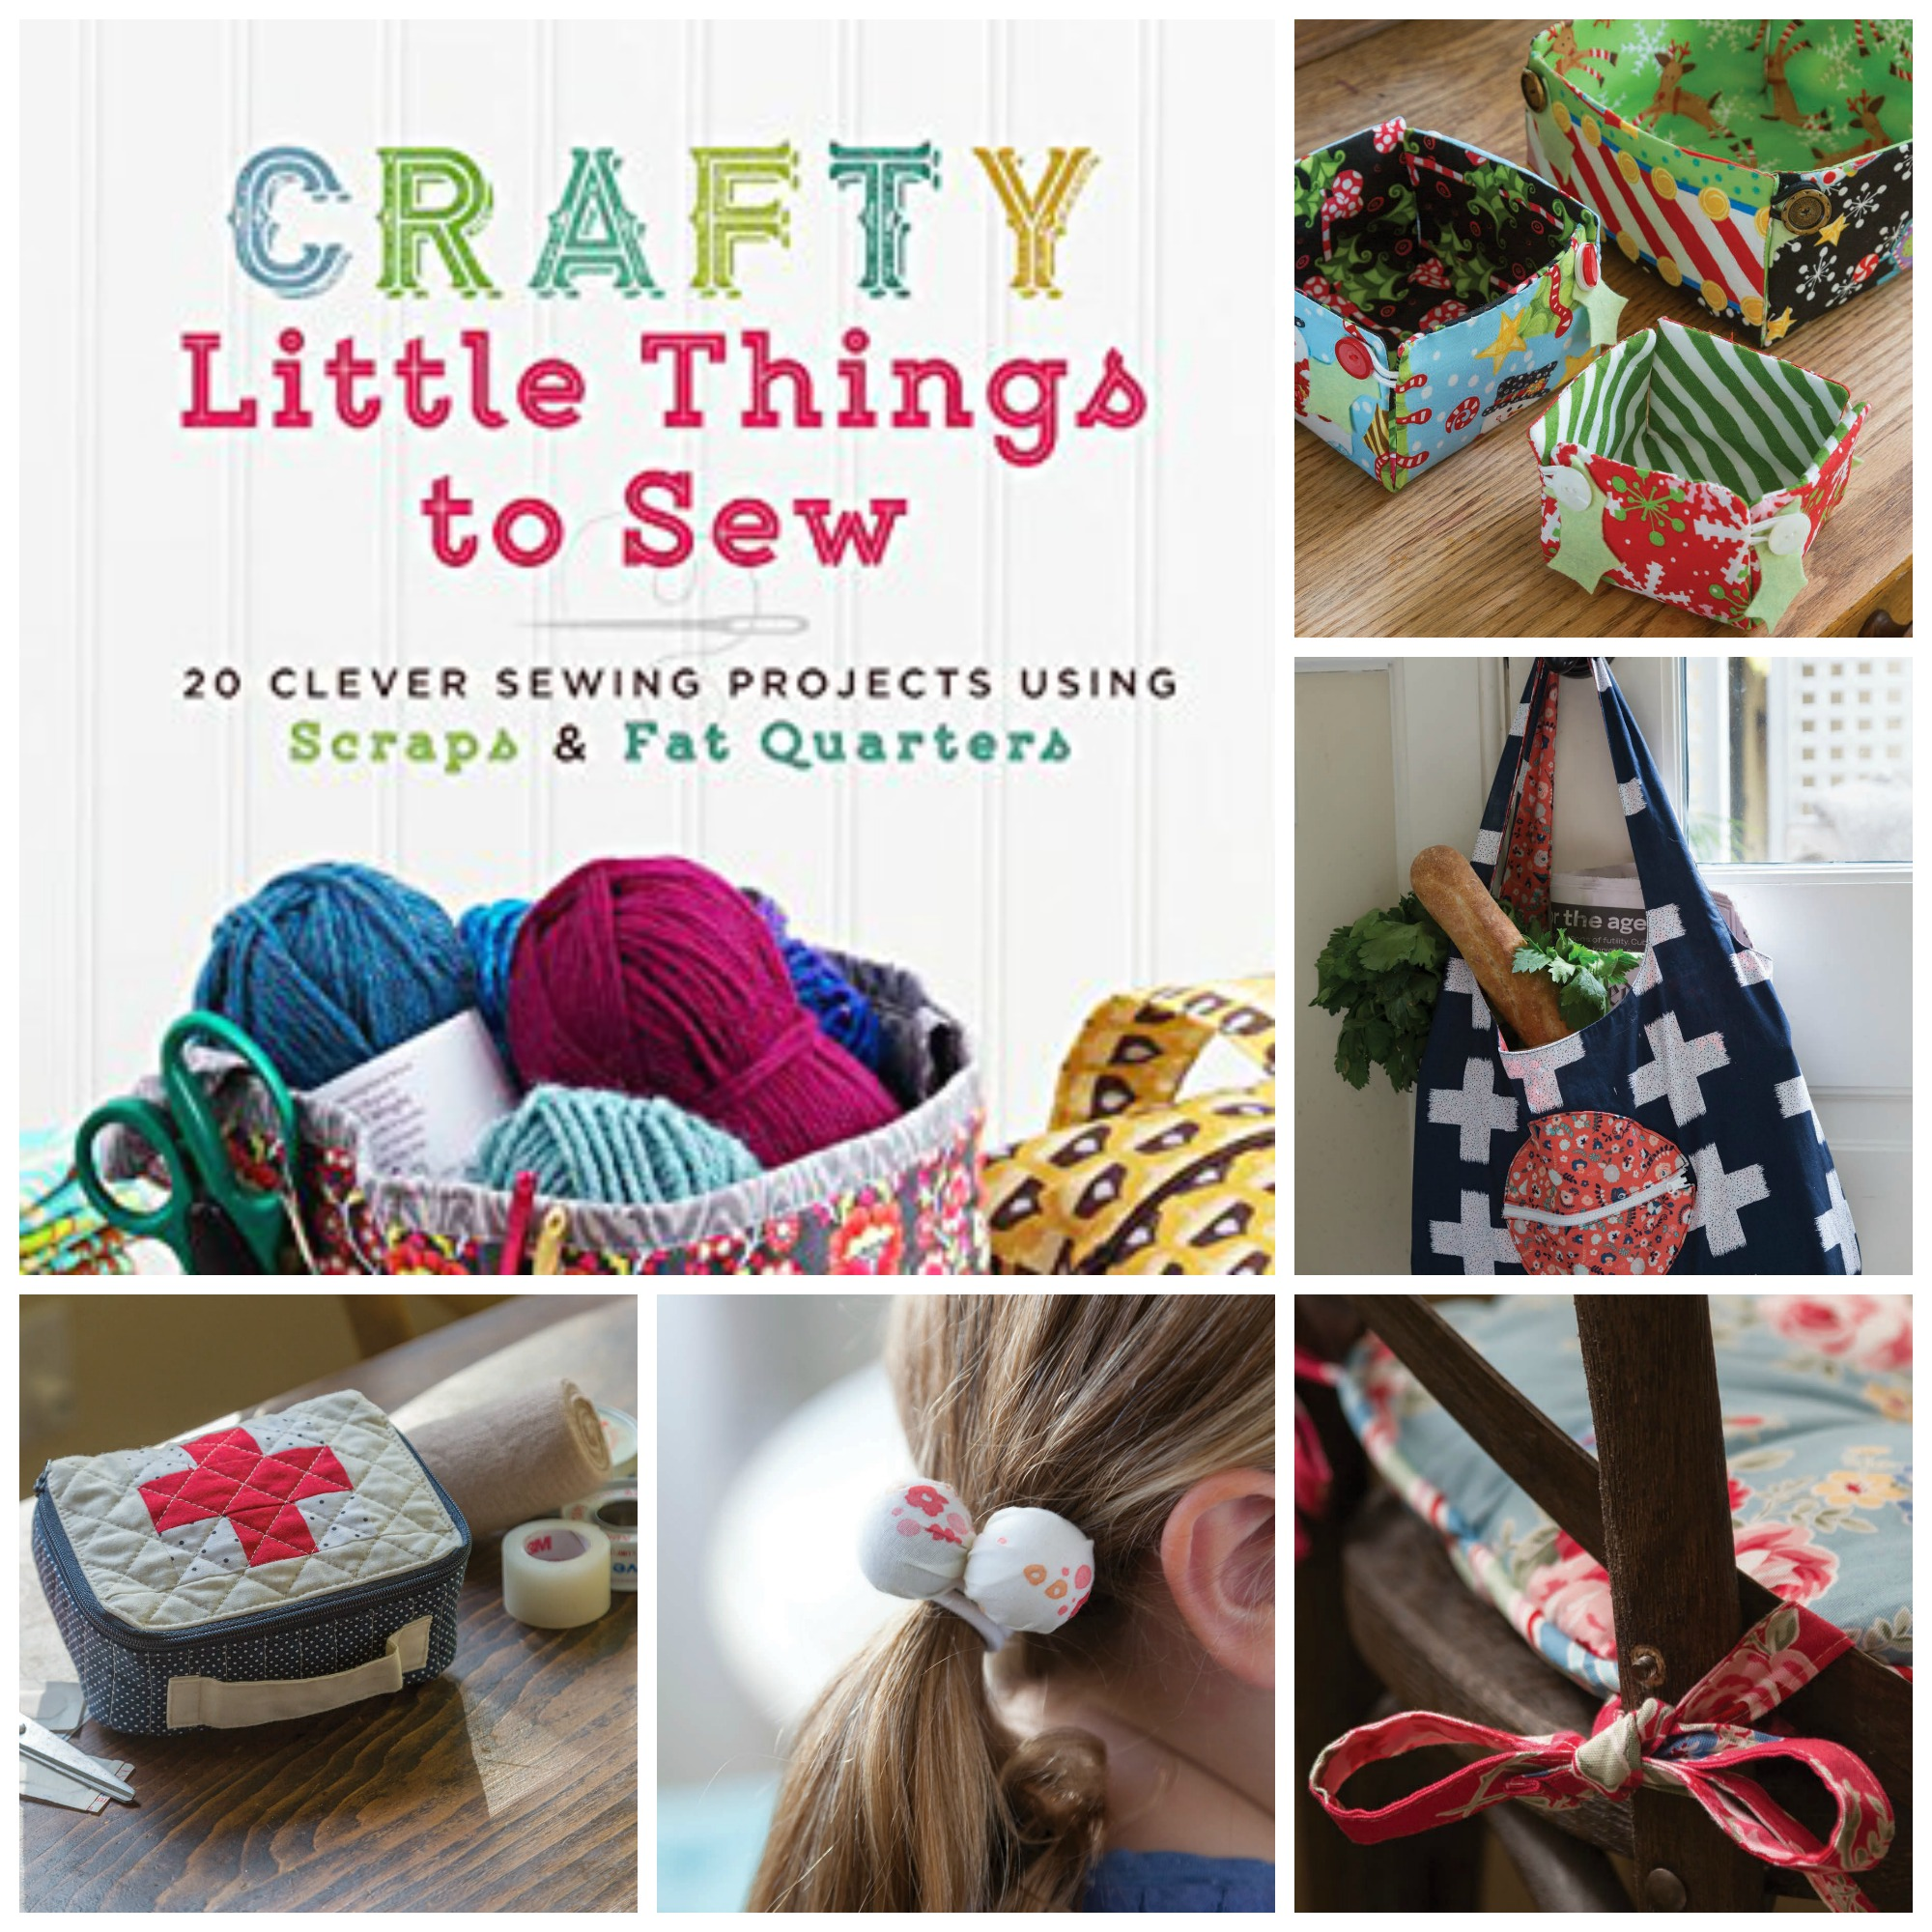 Crafty Little Things to Sew  Collage.jpg